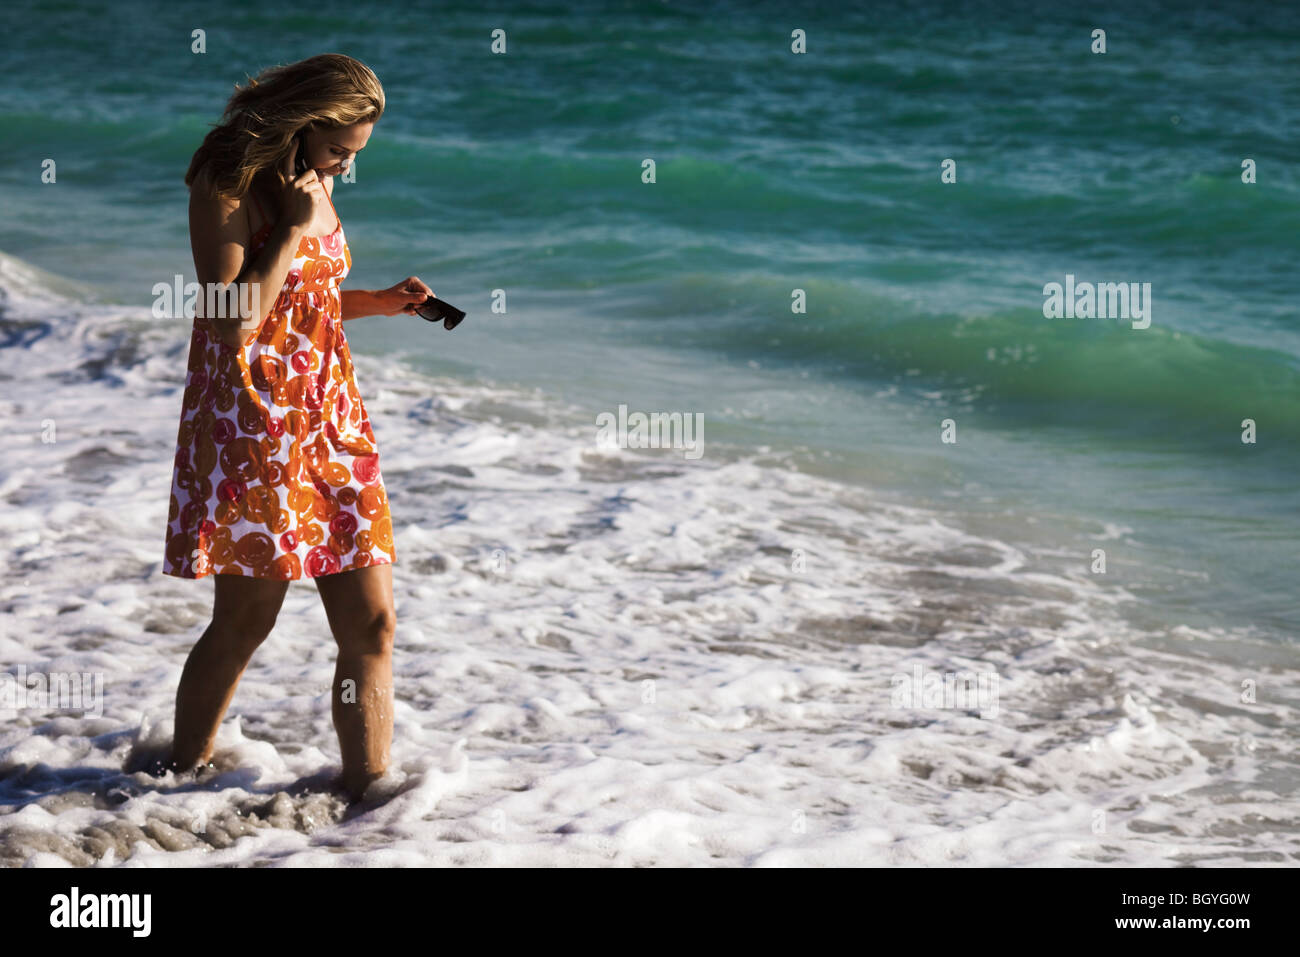 bbw stock photos & bbw stock images - alamy